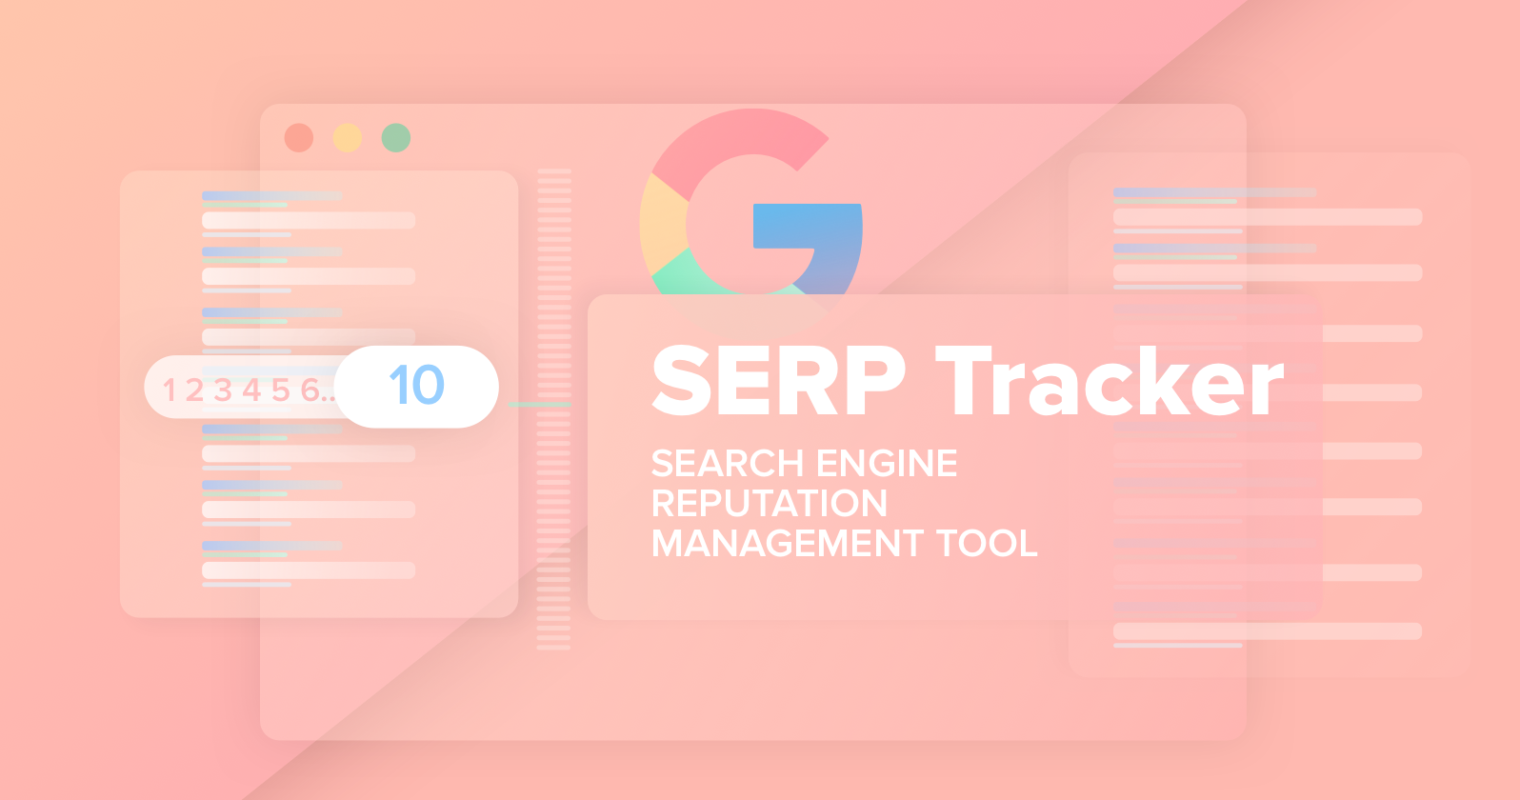 Search Engine Reputation Management: How to Handle It with SE Ranking